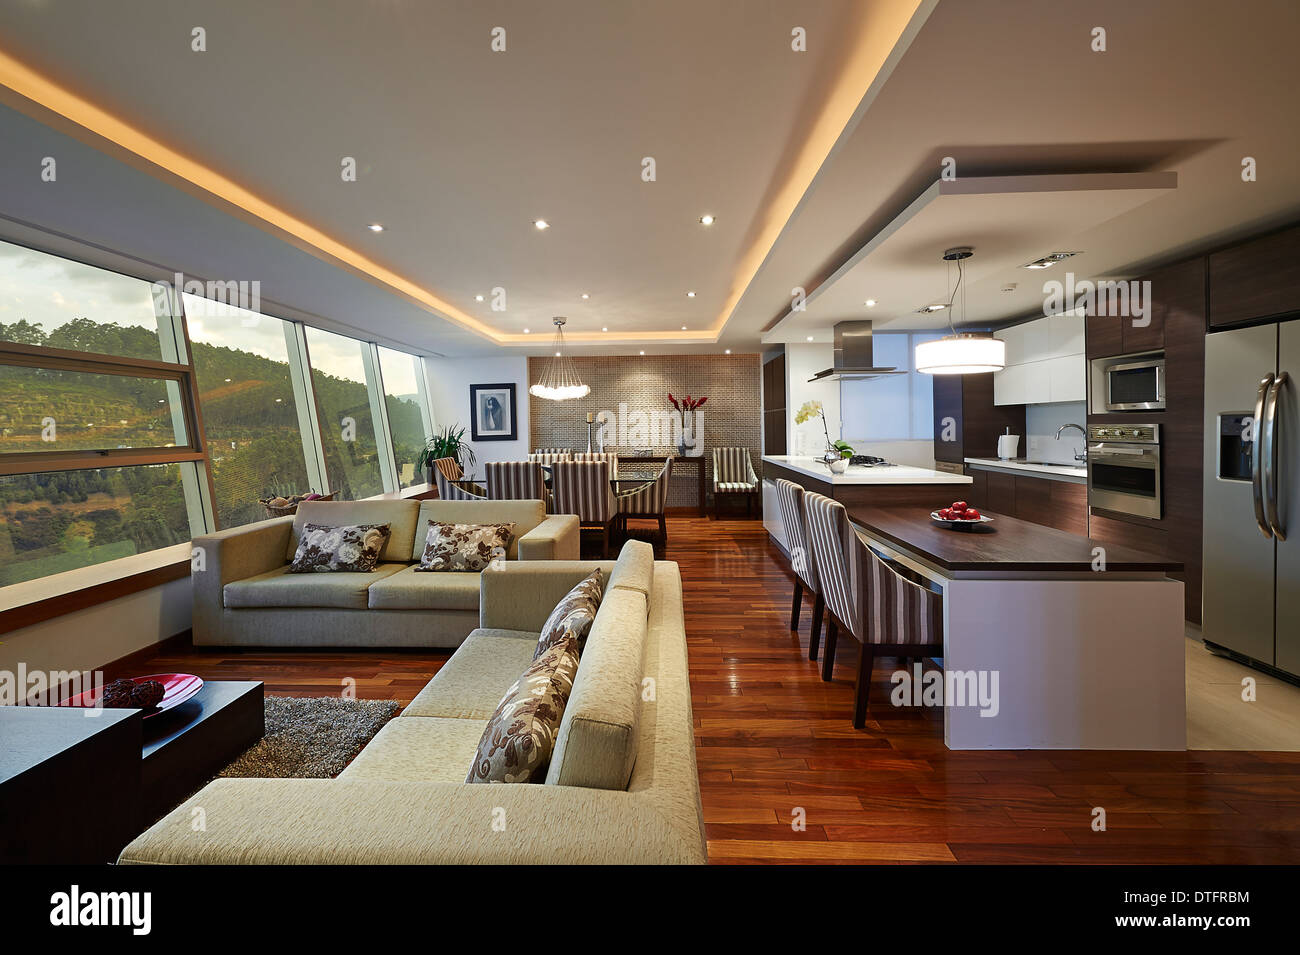 Modern Living Room With Kitchen Interior Design Interior Design Big Modern Living Room And Kitchen Stock Photo